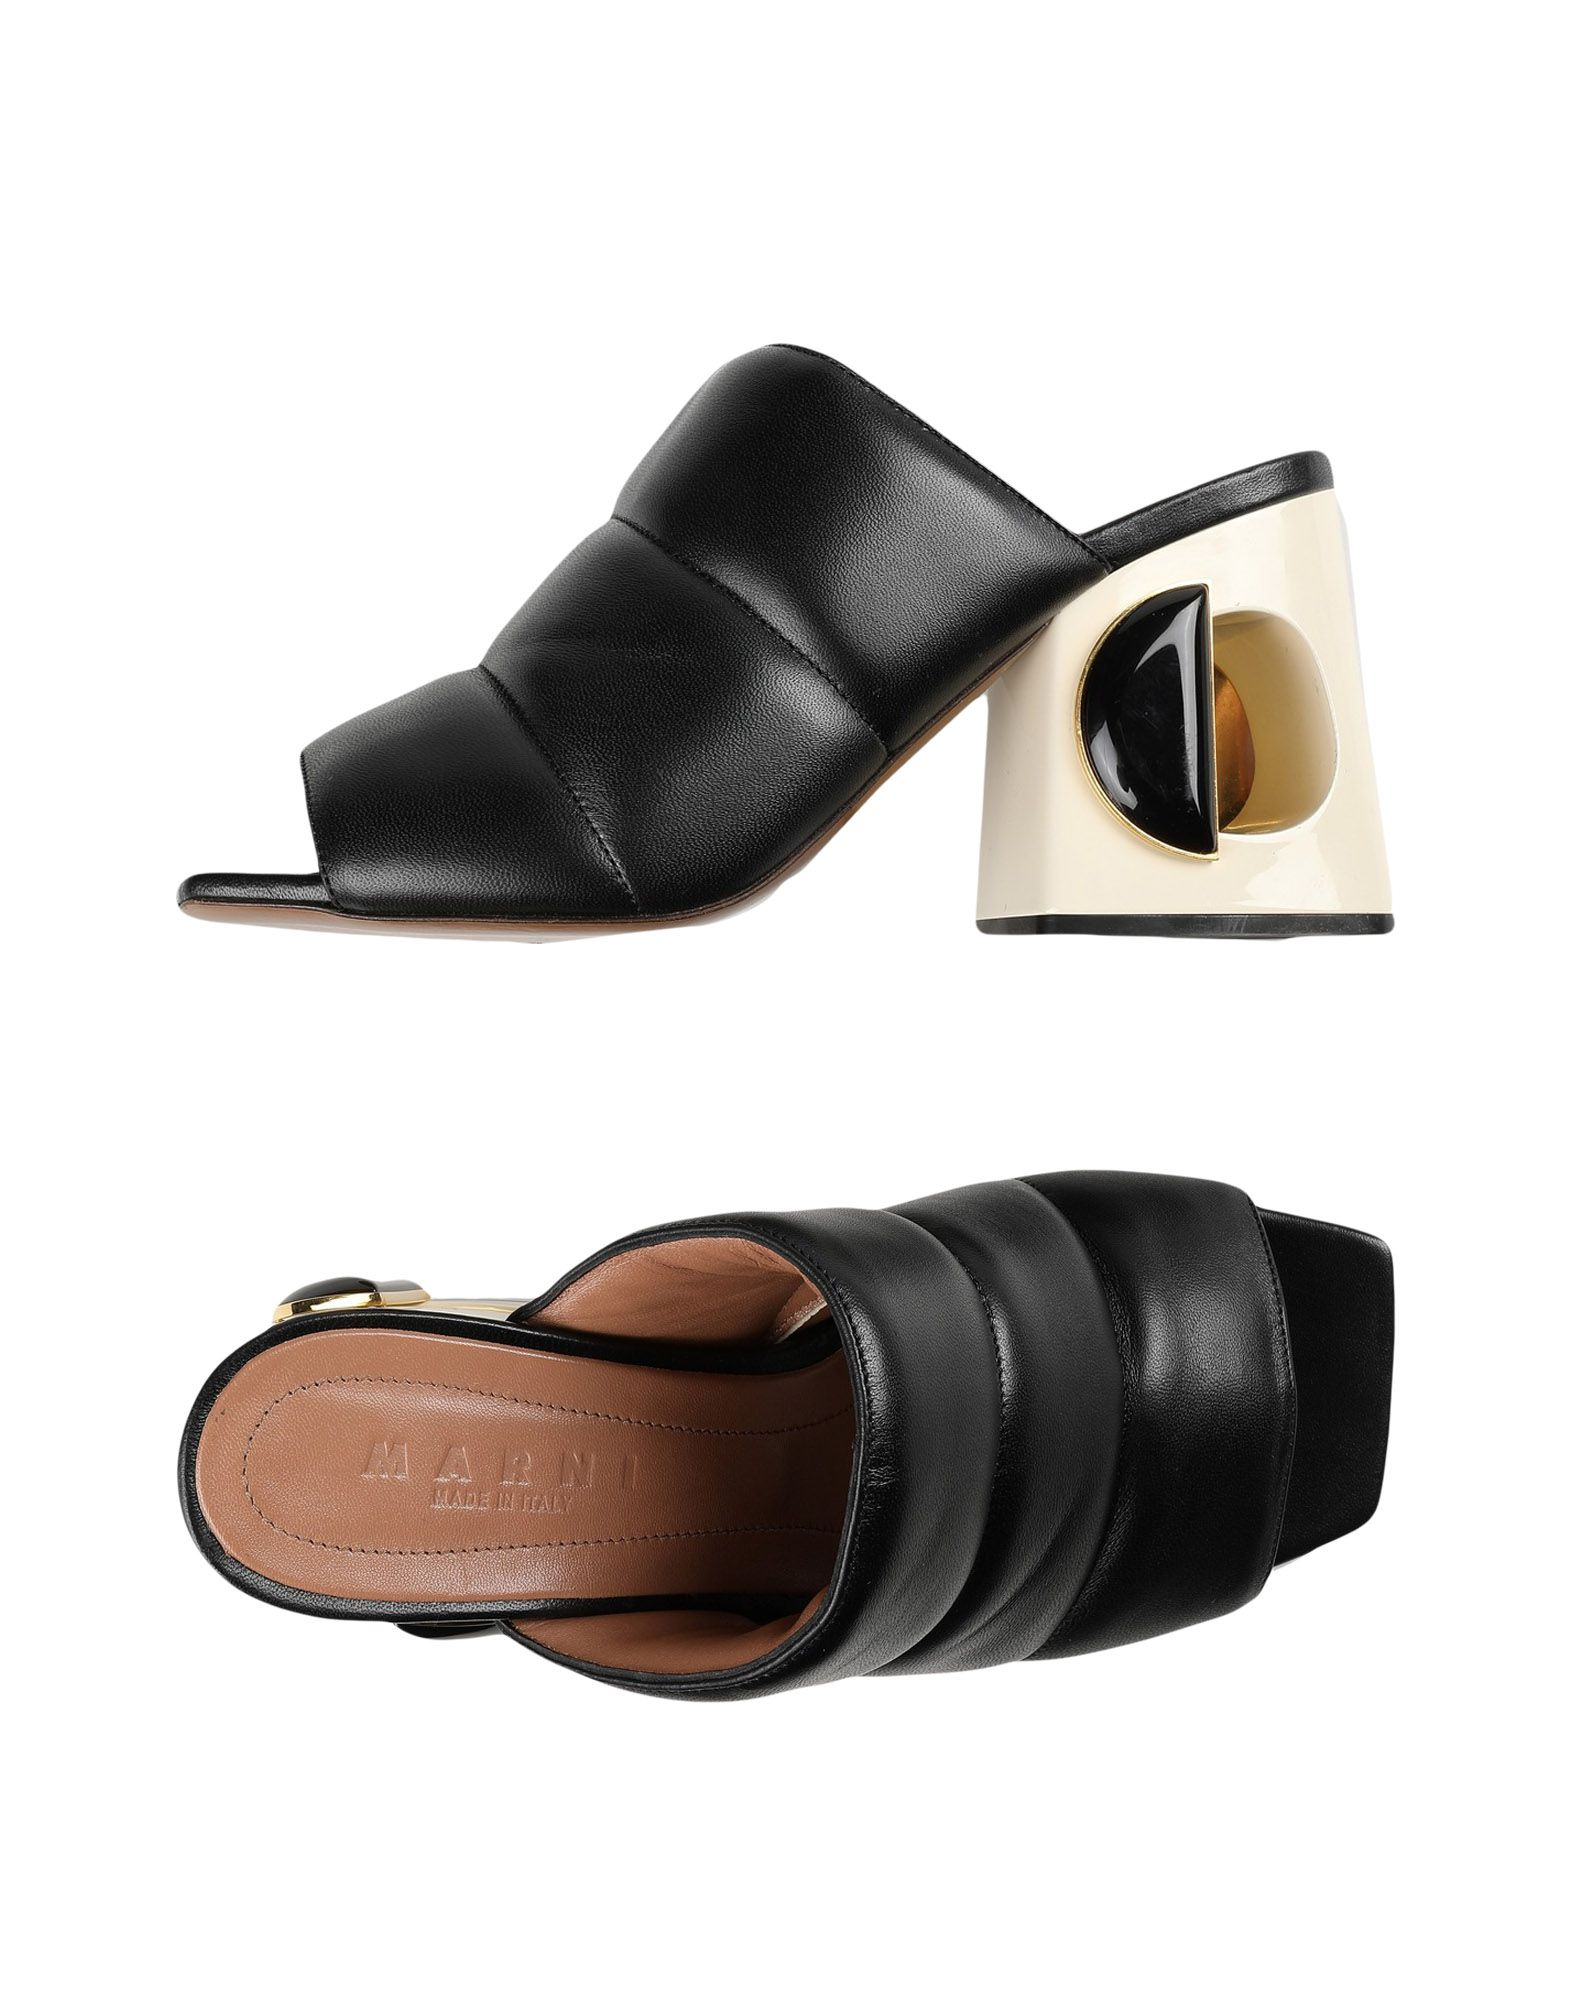 Marni Sandals Sandals - Women Marni Sandals Marni online on  United Kingdom - 11511294JM b1f42d